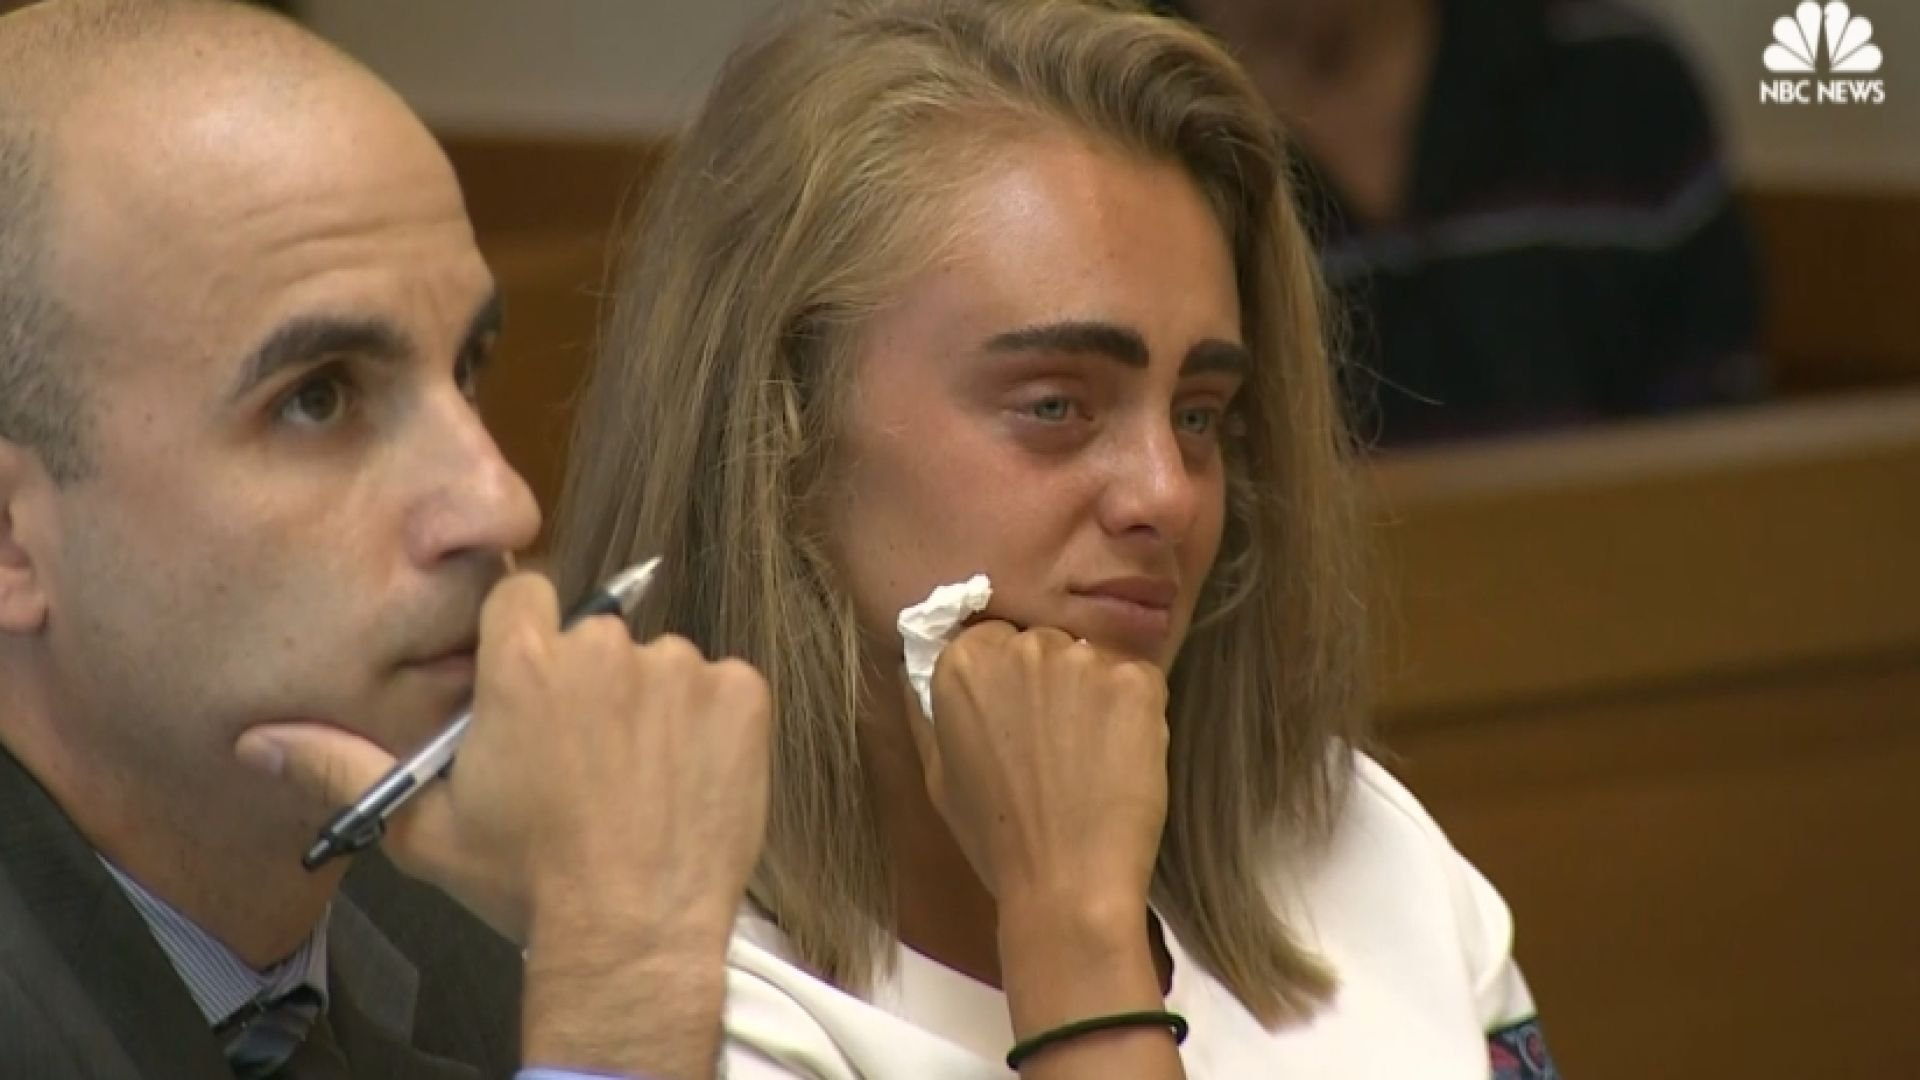 Michelle Carter to be sentenced for involuntary manslaughter